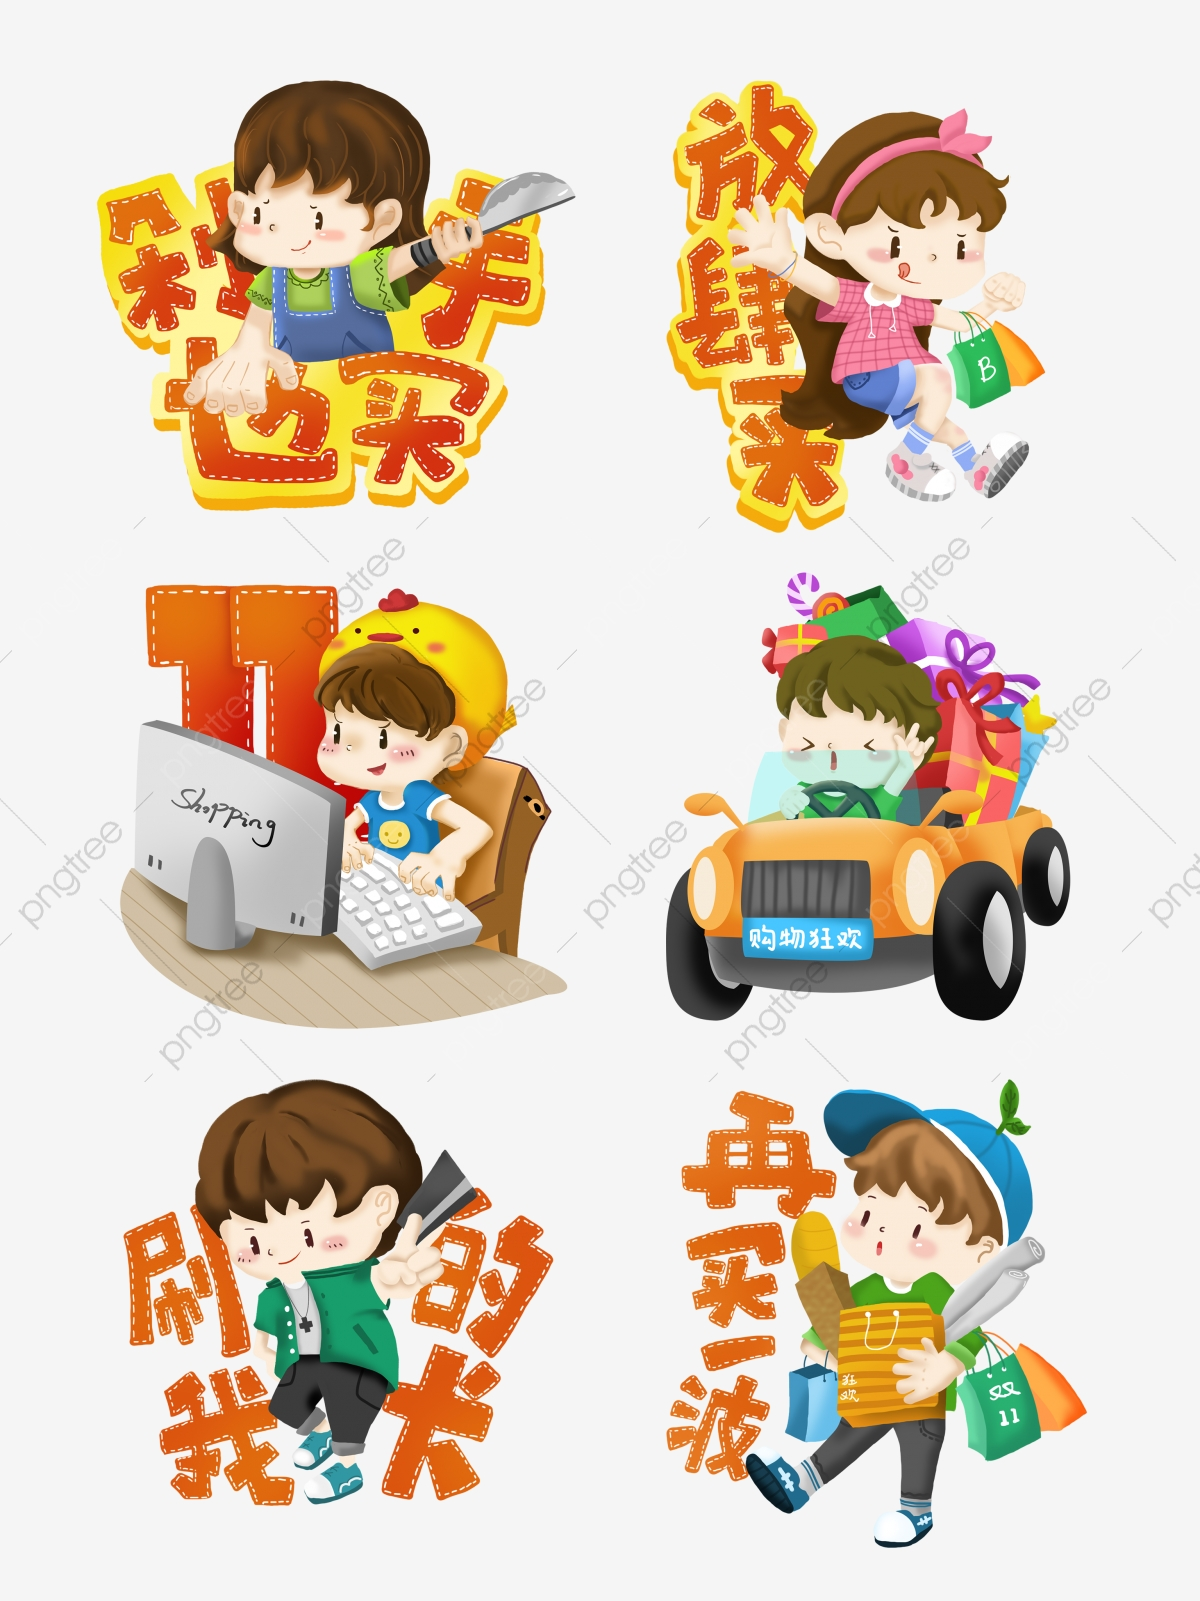 Carnival Characters Microblogging Wechat With Illustrations